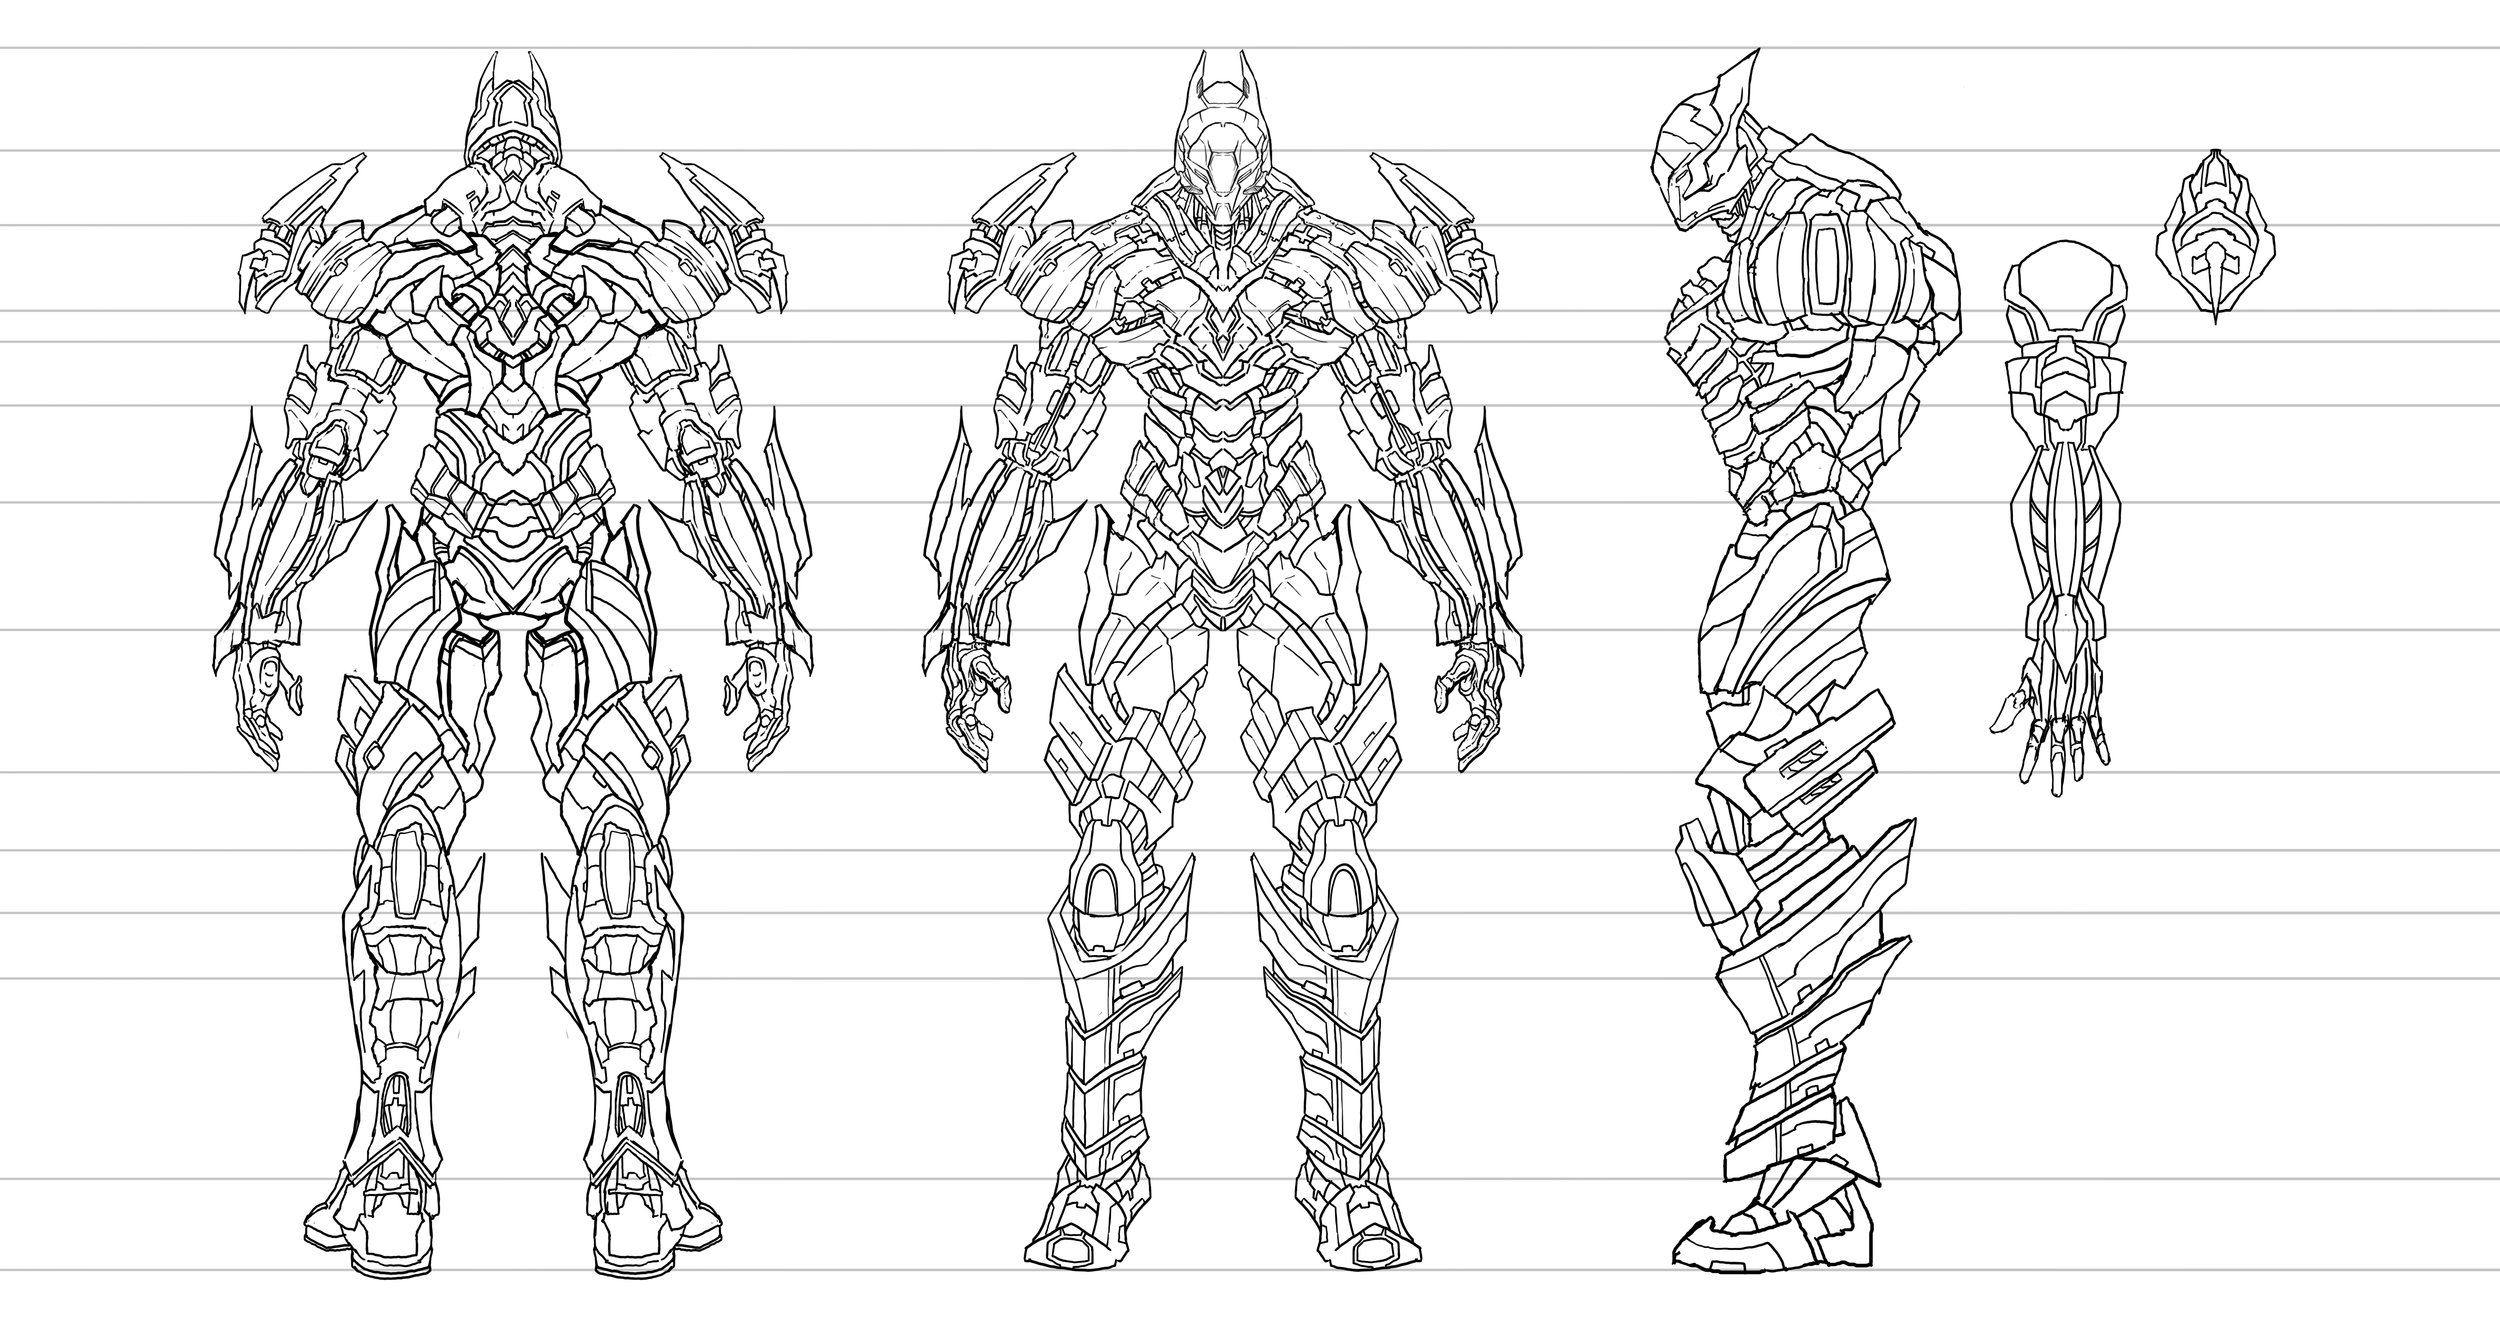 Batman_Character_Sheet_03_Turnaround.jpg